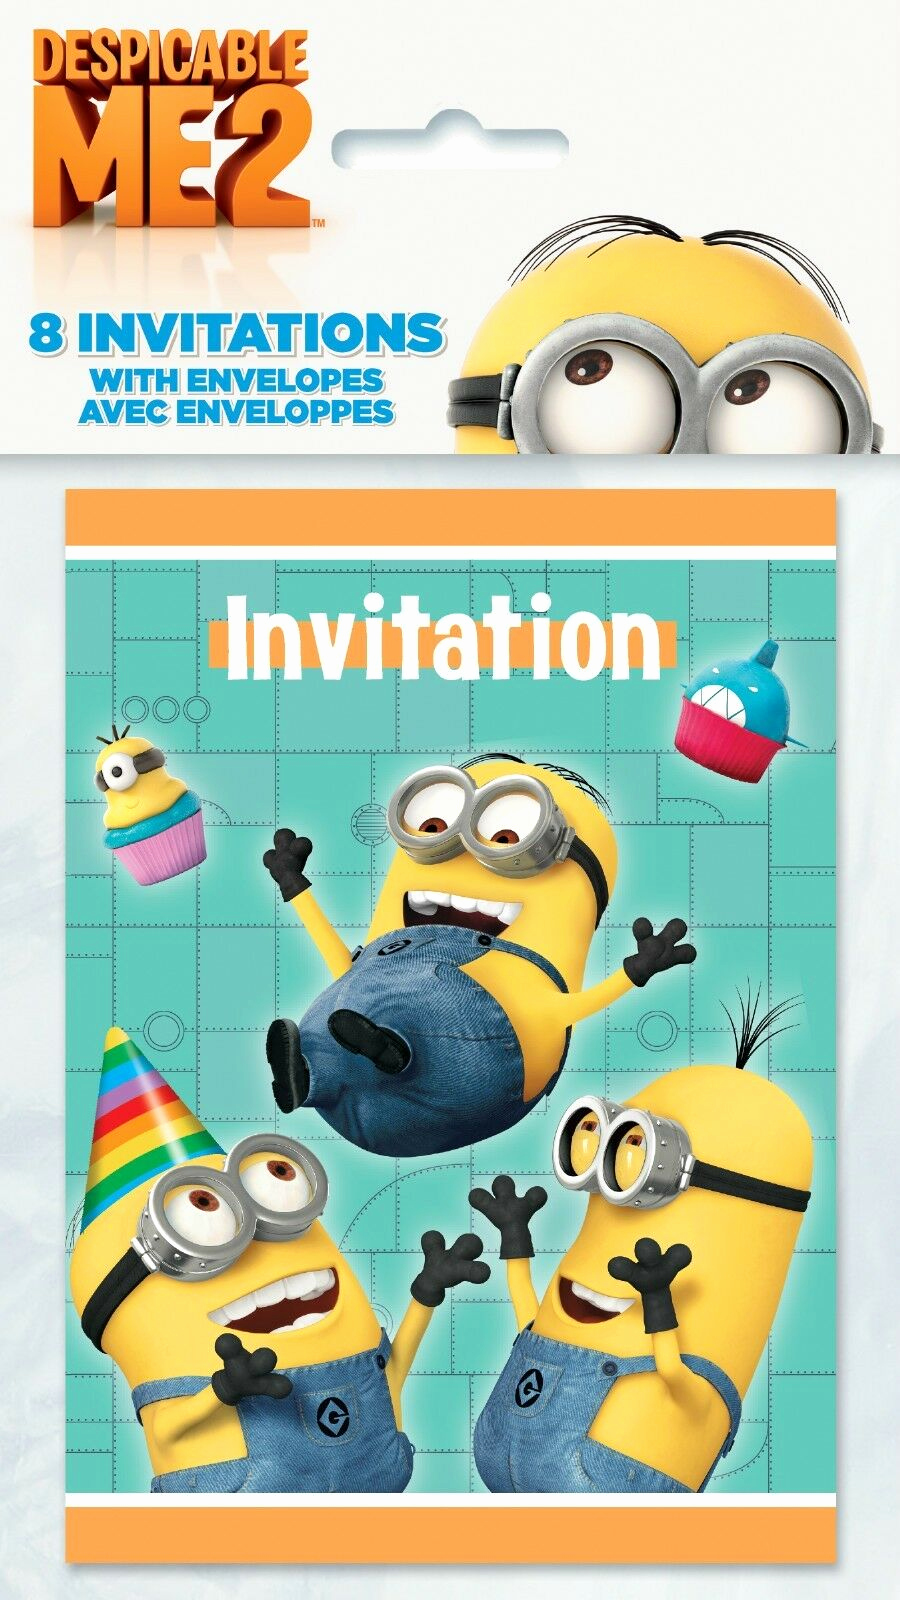 Minion Birthday Party Invitation New Despicable Me 2 Minions Party Birthday Invitations with